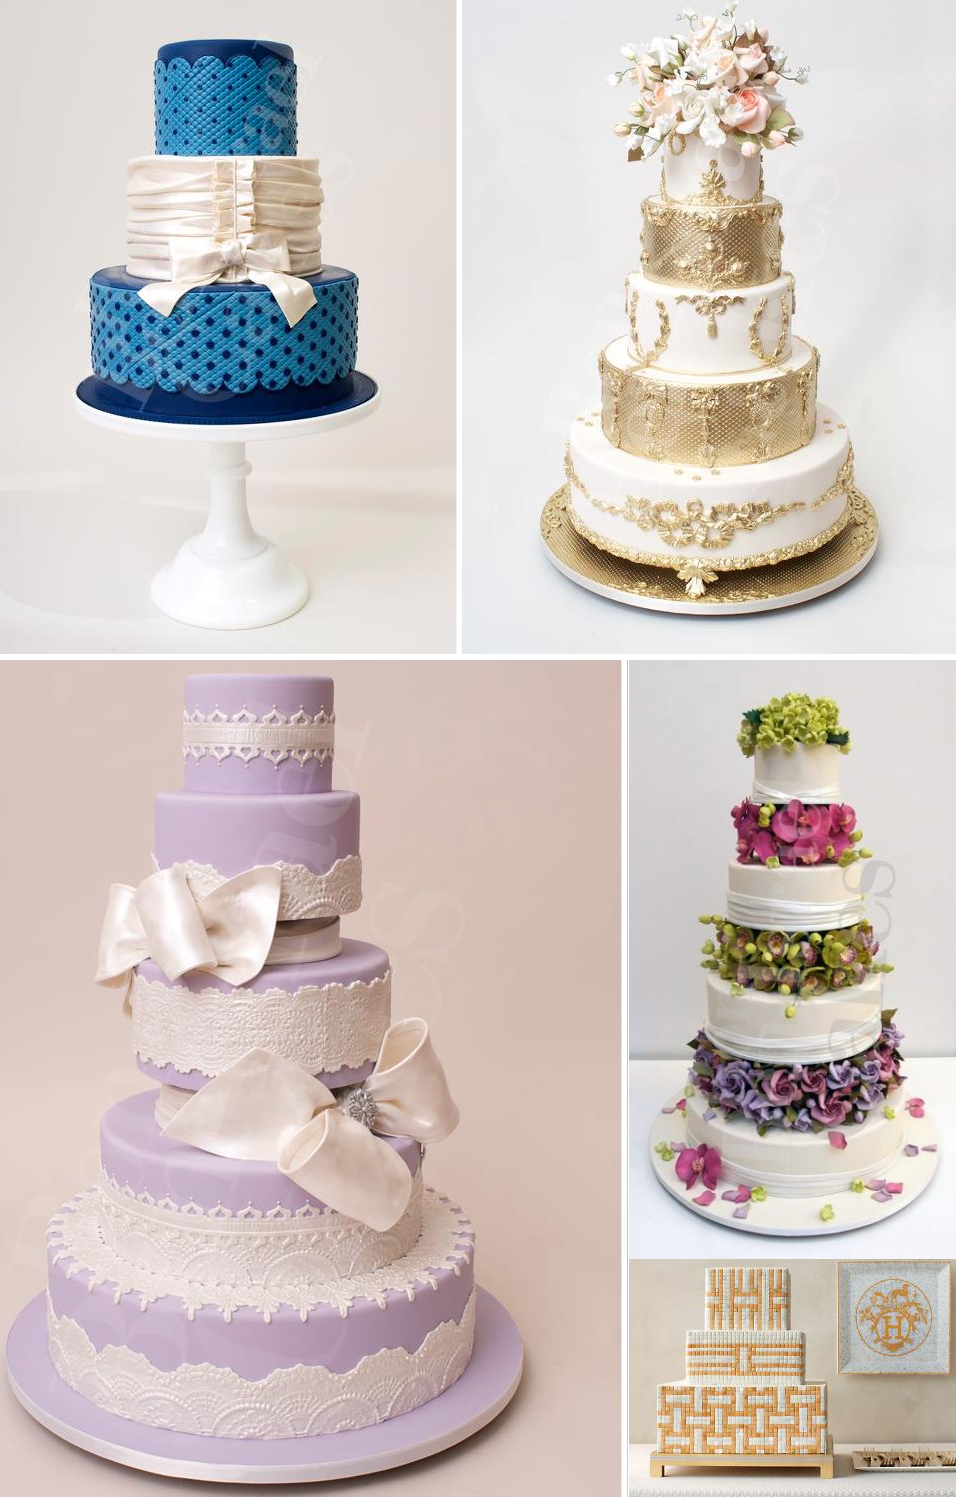 Wedding Cake Inspiration From NYC Ron Ben Isreal Cakes 1